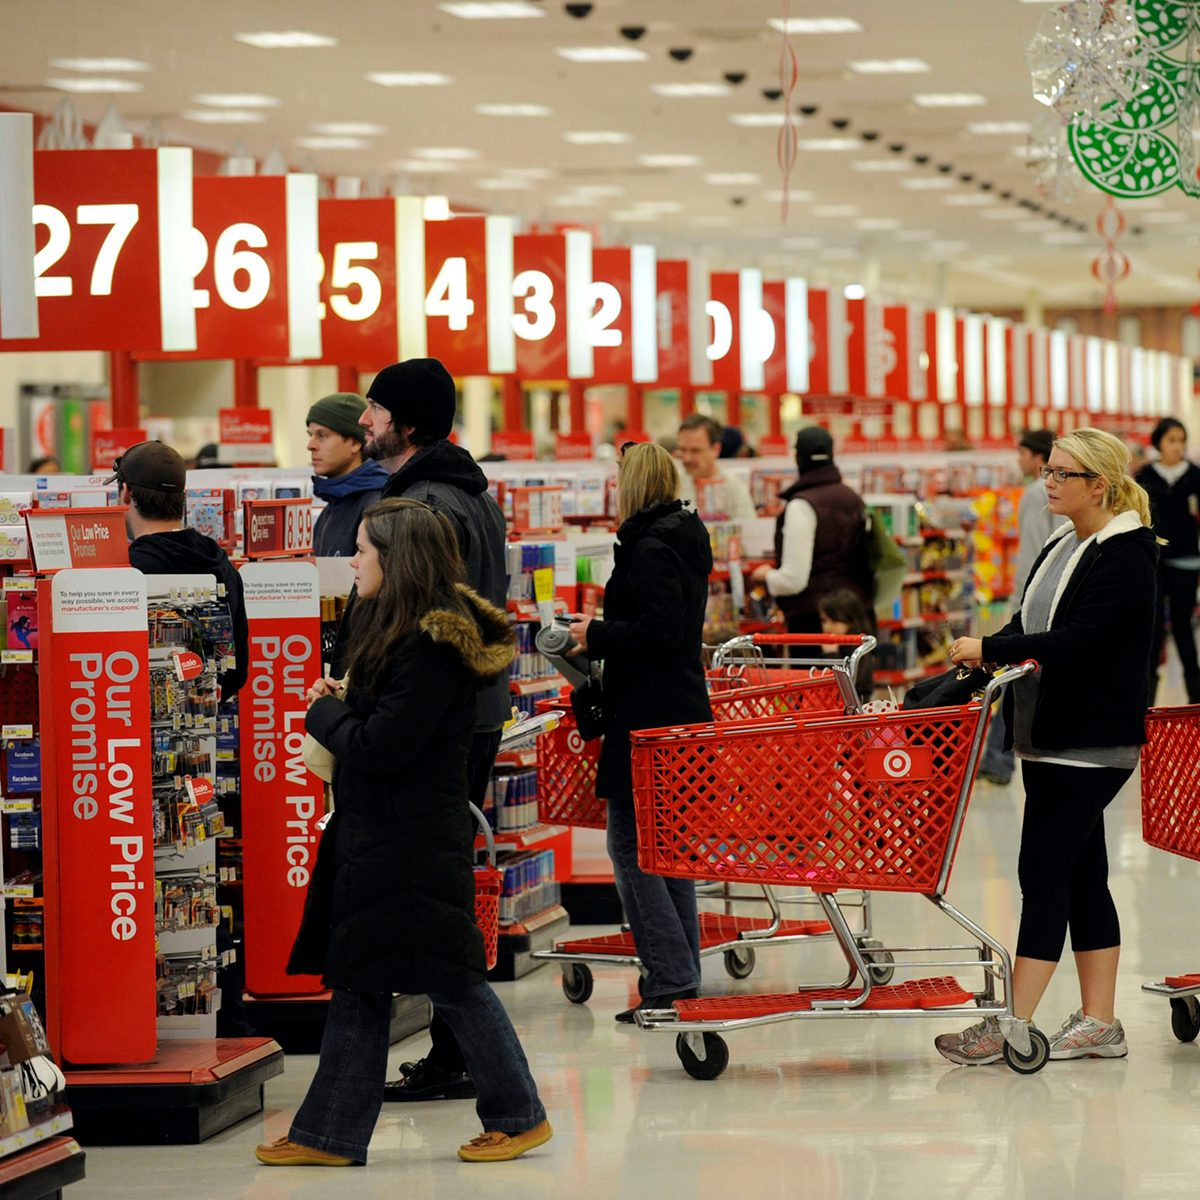 Busy Target checkouts